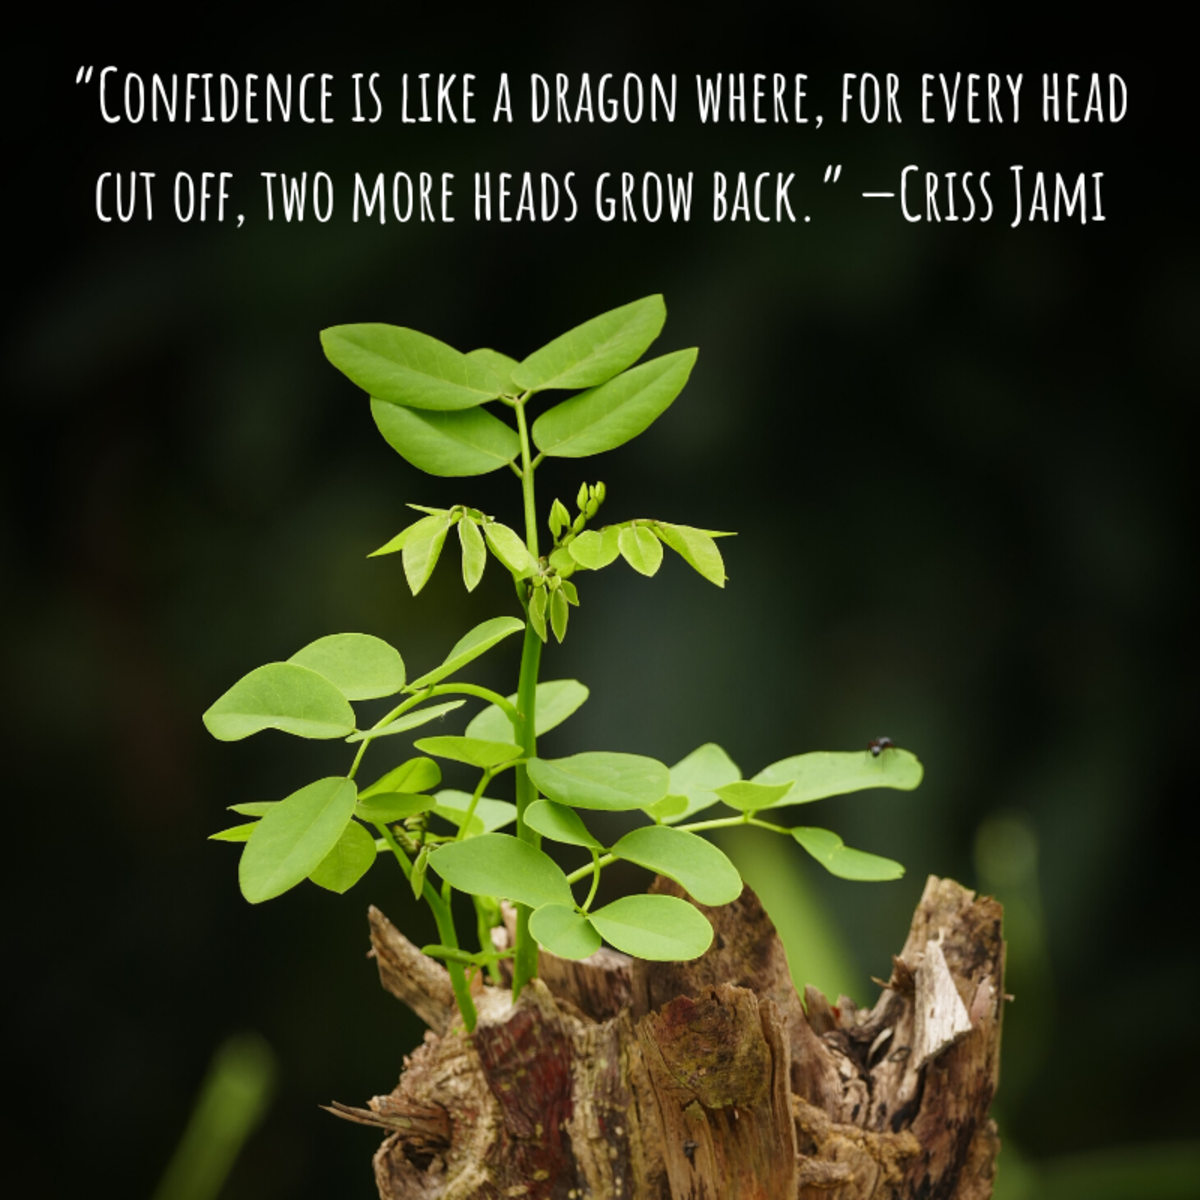 """Confidence is like a dragon where, for every head cut off, two more heads grow back."" —Criss Jami"